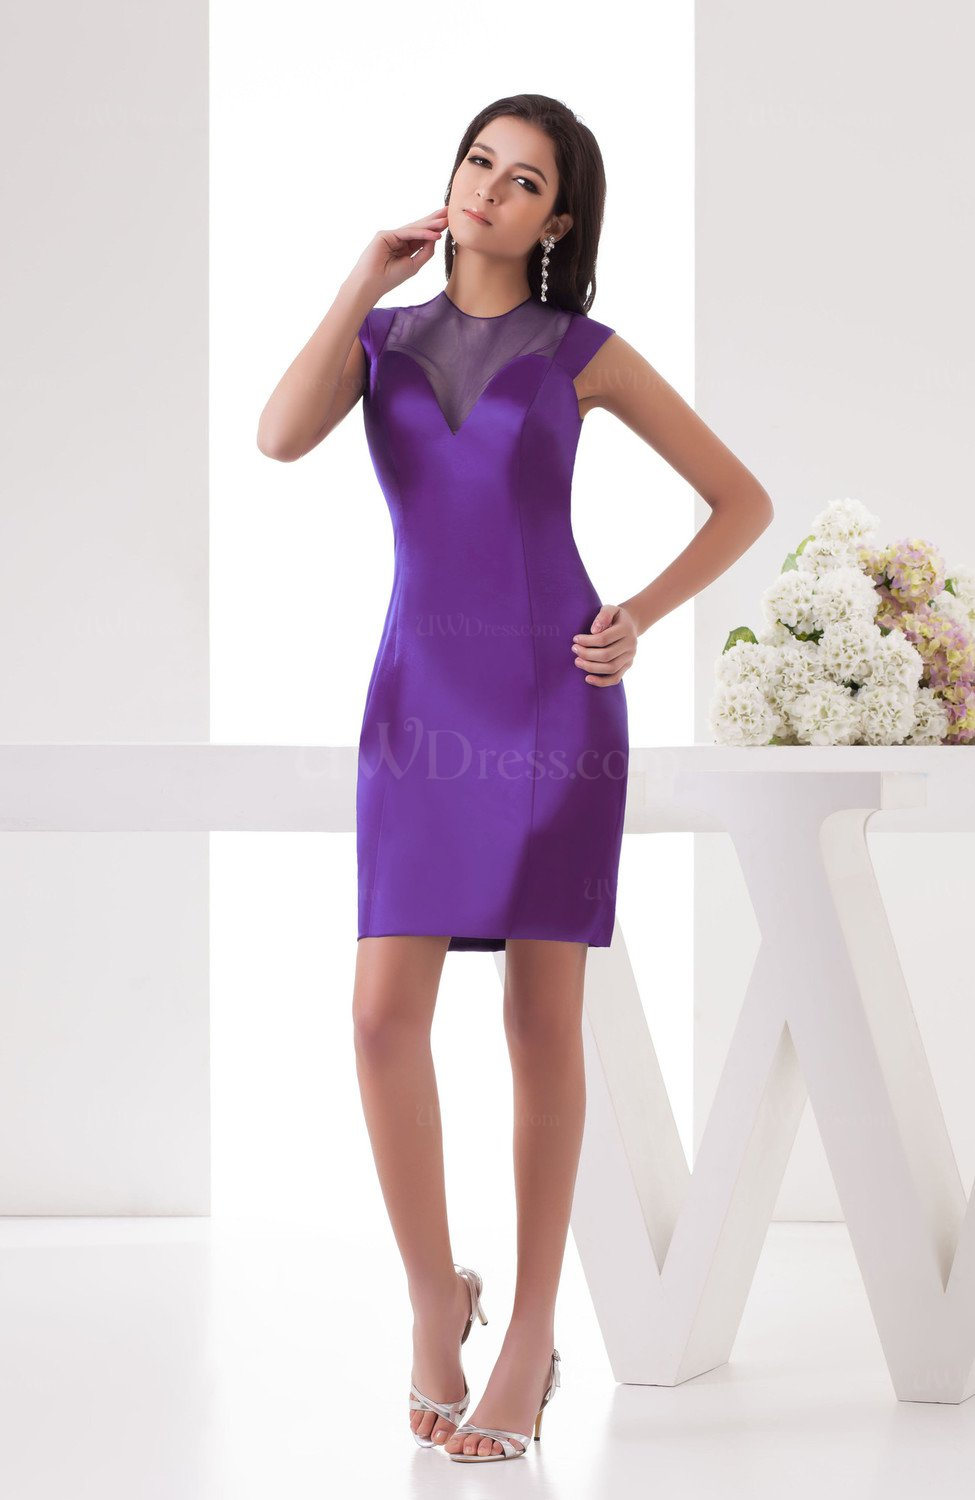 Casual wedding guest dress inexpensive sheer dream petite for Wedding guest petite dresses